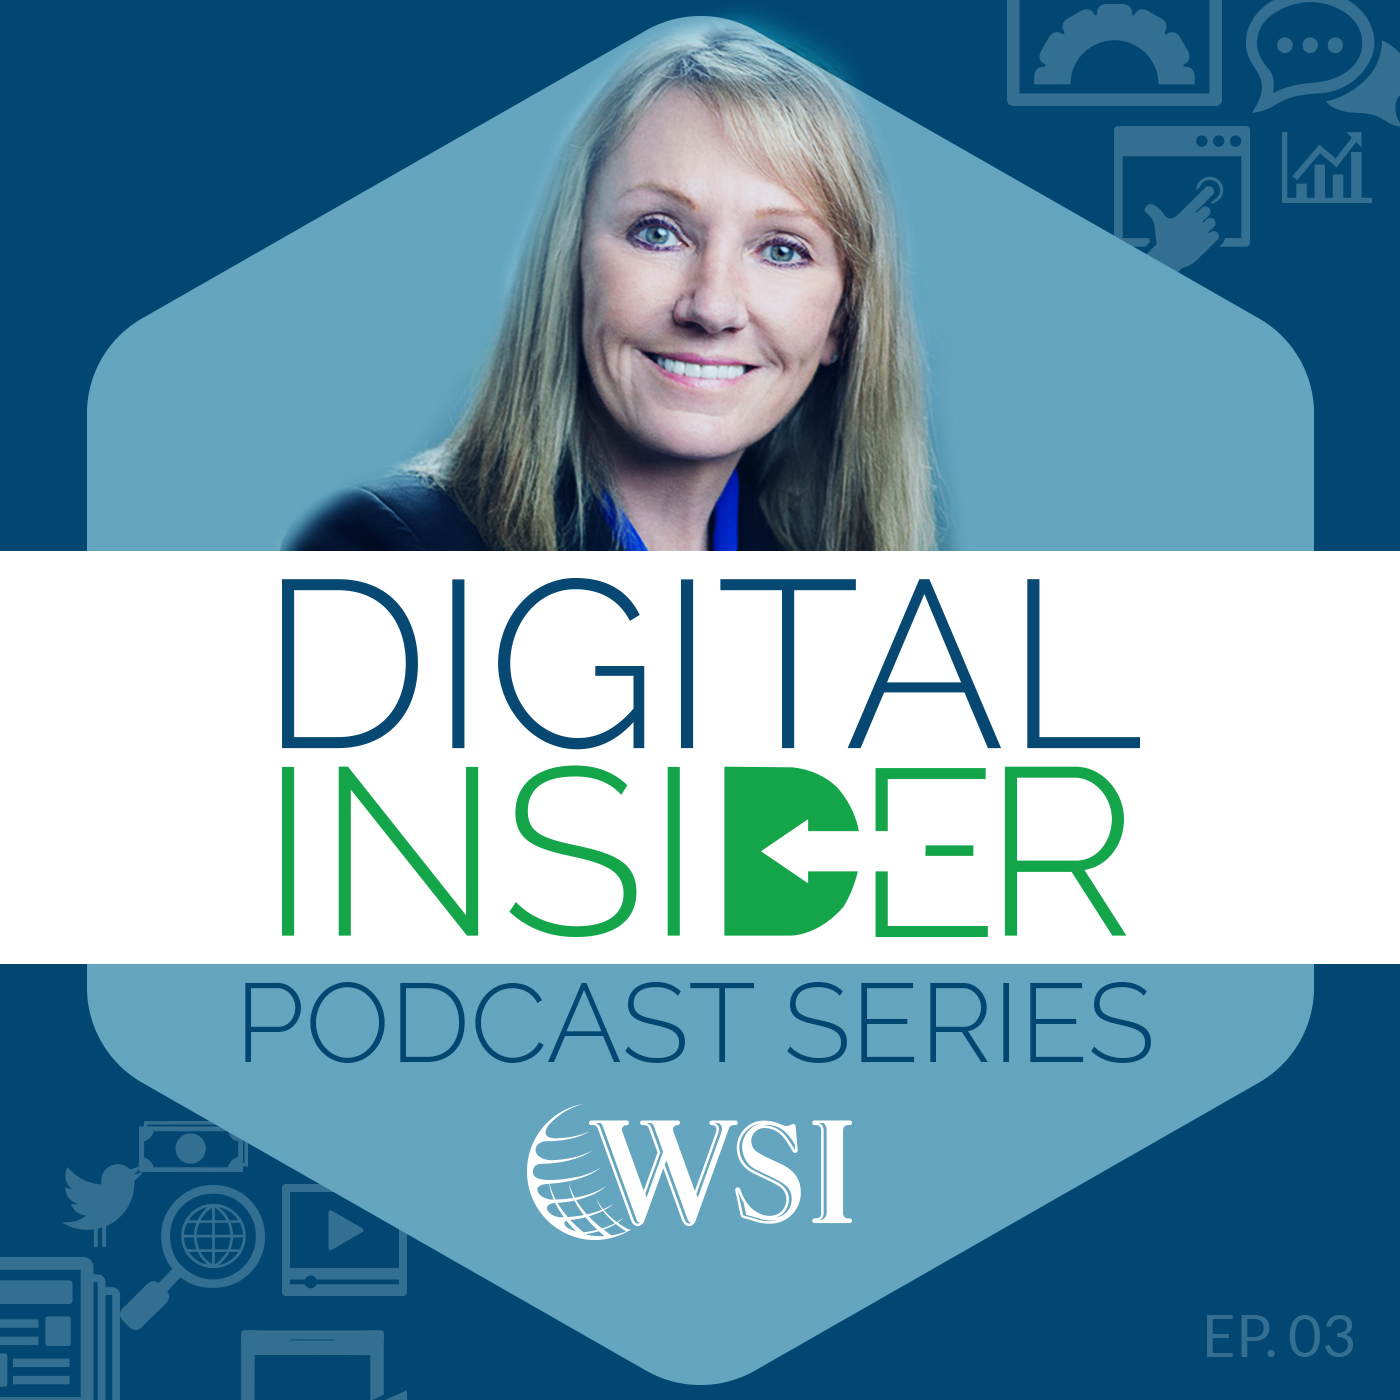 Episode 3: Targeted Lead Generation with Sharon Rowlands